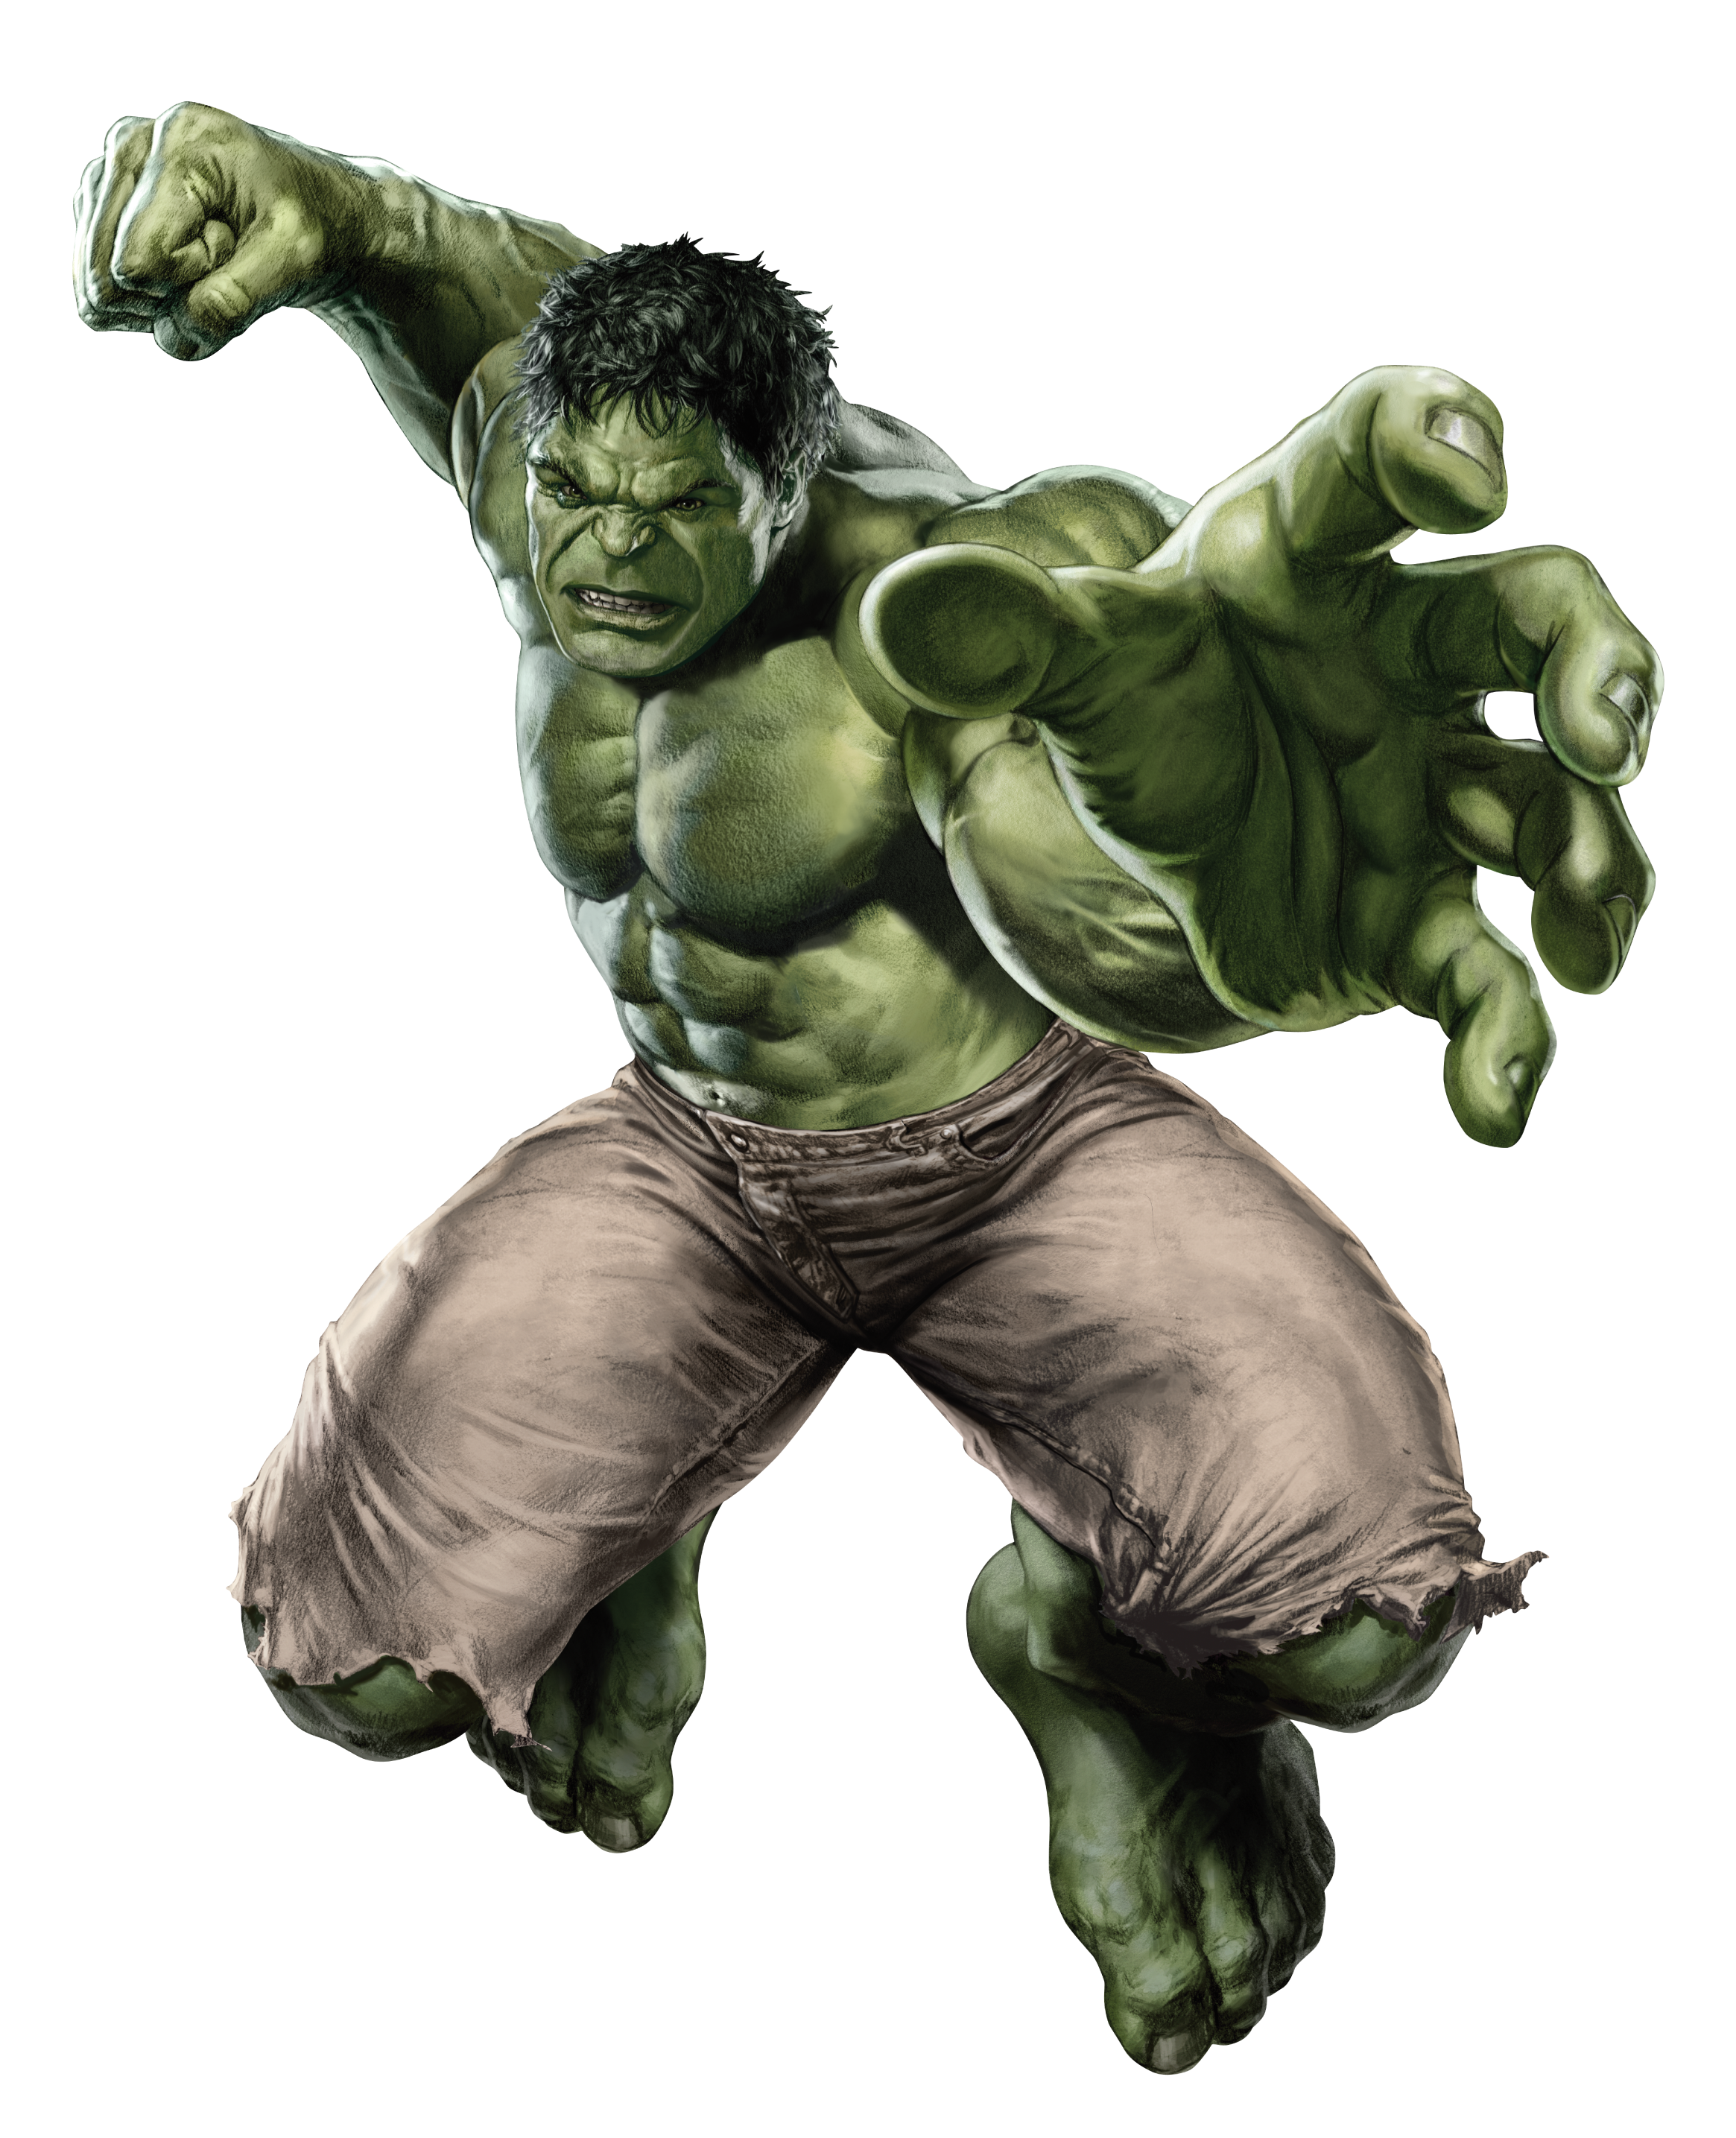 Powerful Hulk Wallpaper 253.98 Kb